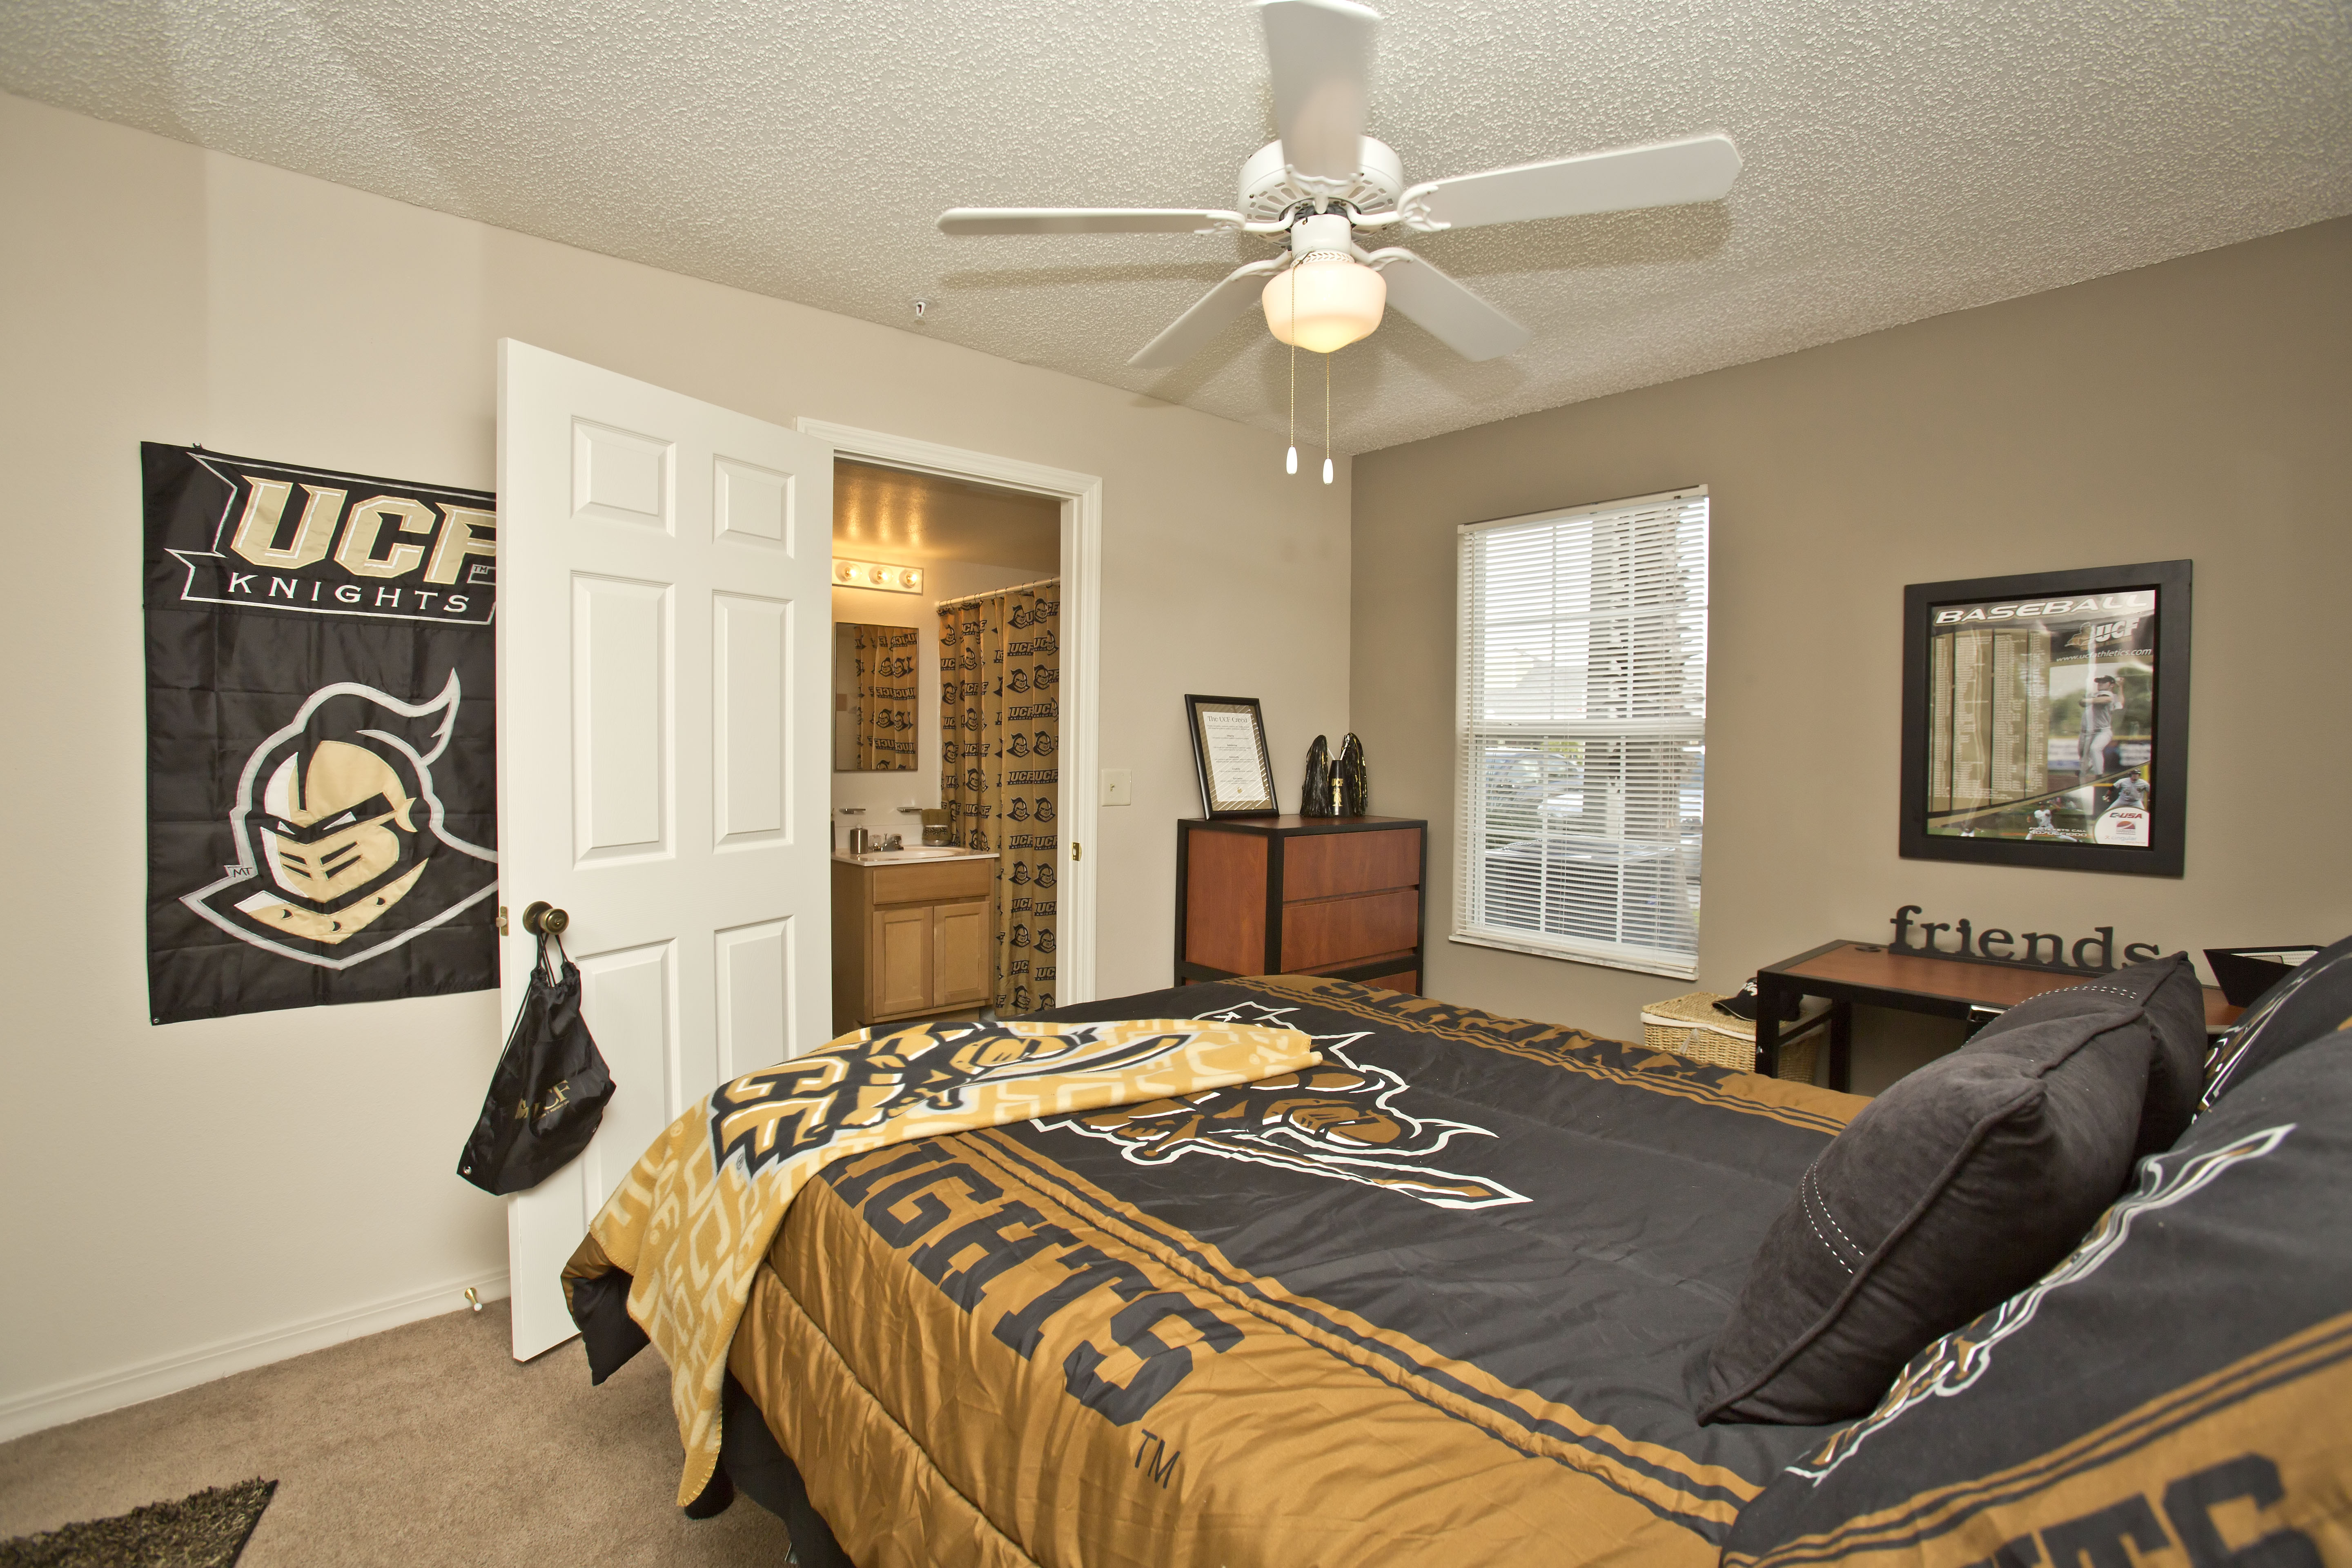 Sublets for university of central florida students college student apartments for One bedroom apartments near ucf